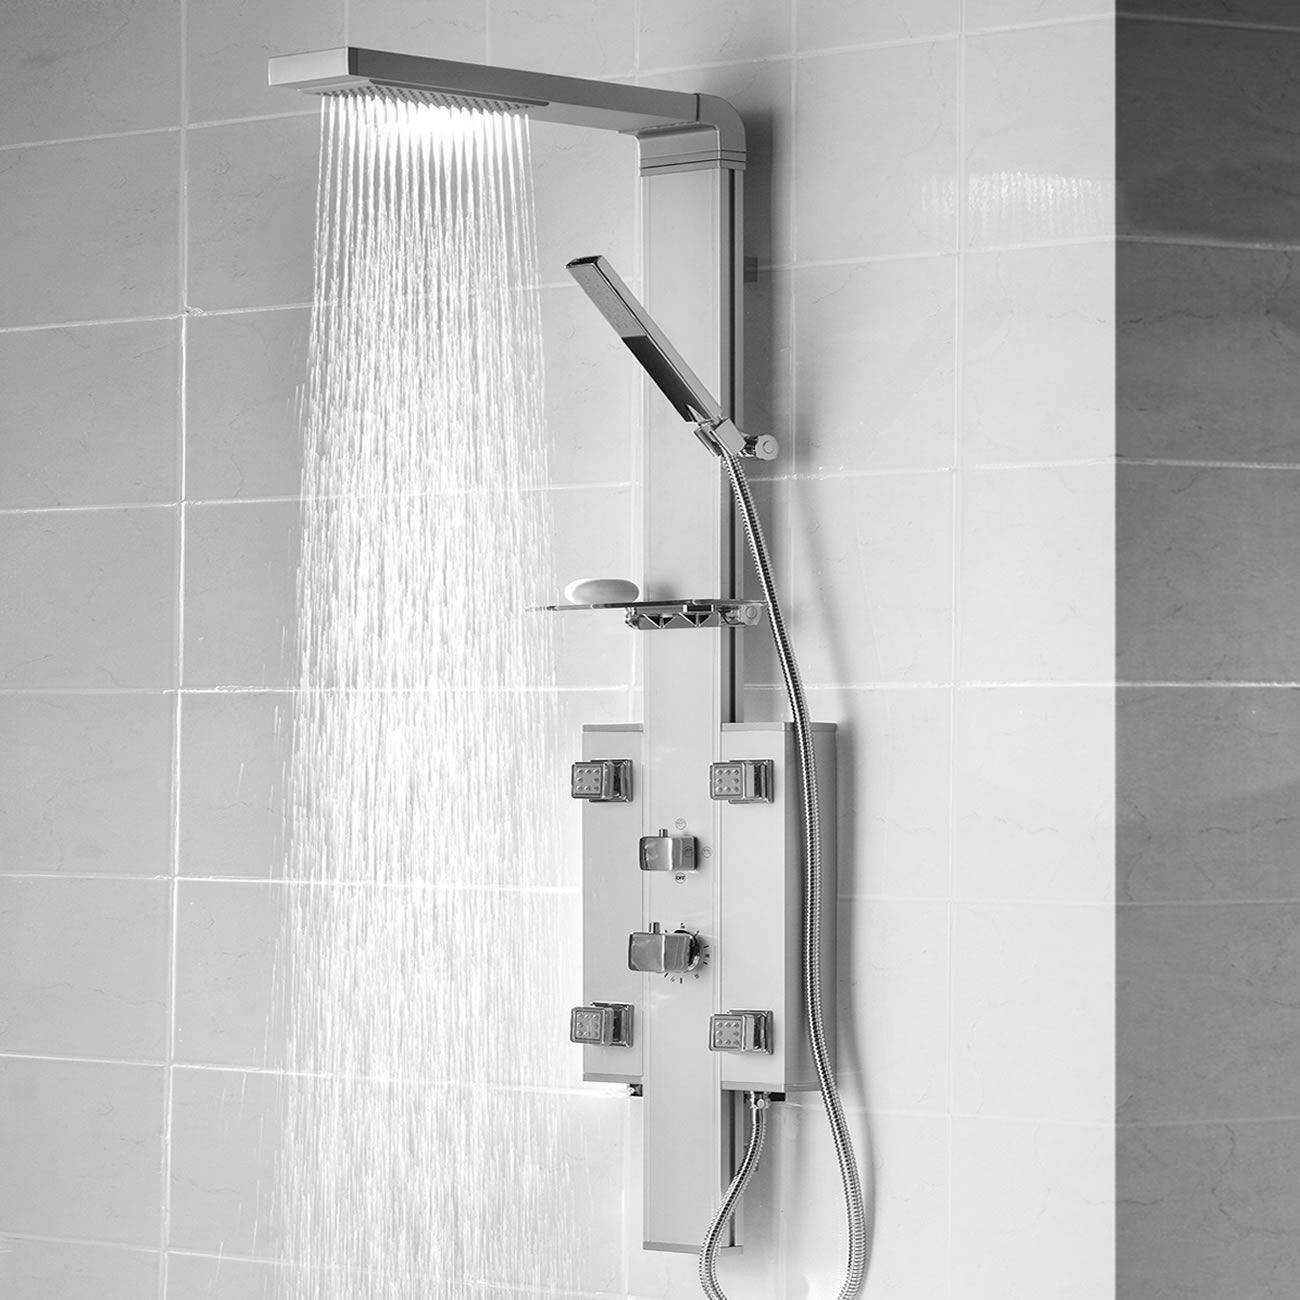 Thermostatic Shower Panel With 4 Body Jets  Luxury Modern. Ballet Bar. Renovators Supply. Slate Ge Appliances. Tufted Couch. Natuzzi Leather Sectional Reviews. Whitewashed Kitchen Cabinets. Korbels. Dining Room Curtain Ideas